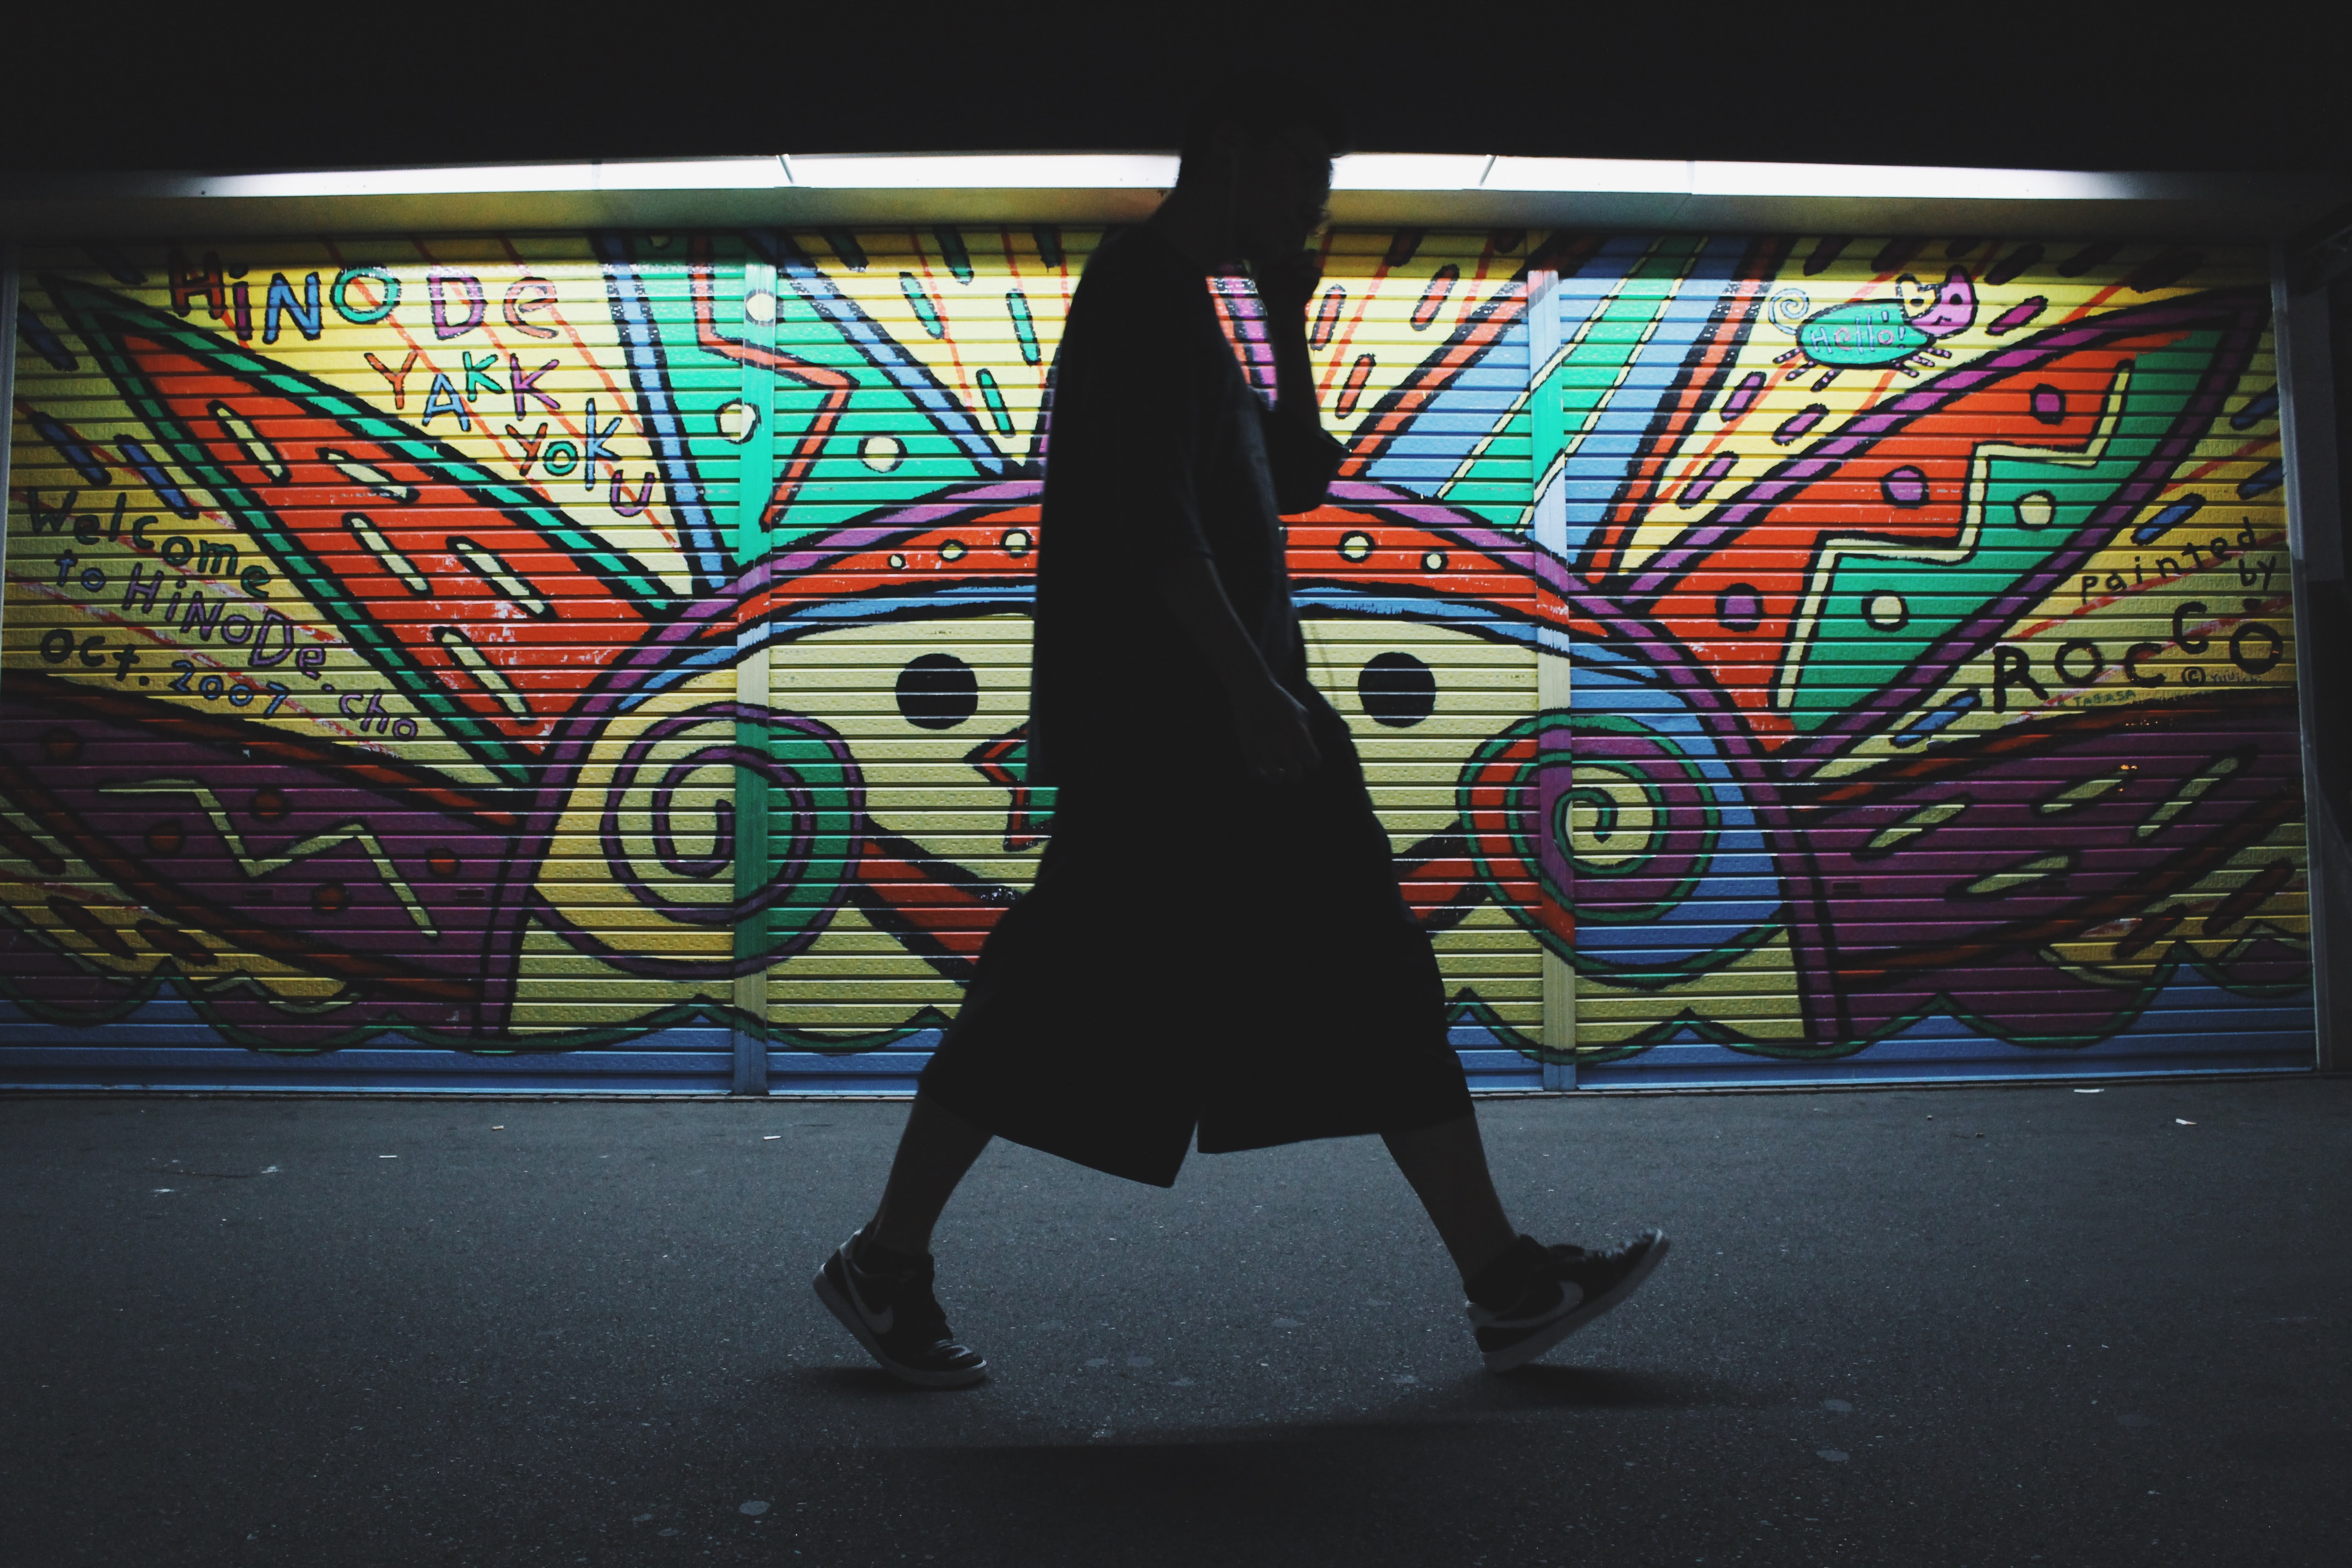 Silhouette of man in shorts and t shirt on phone walking past colorful sun graffiti art